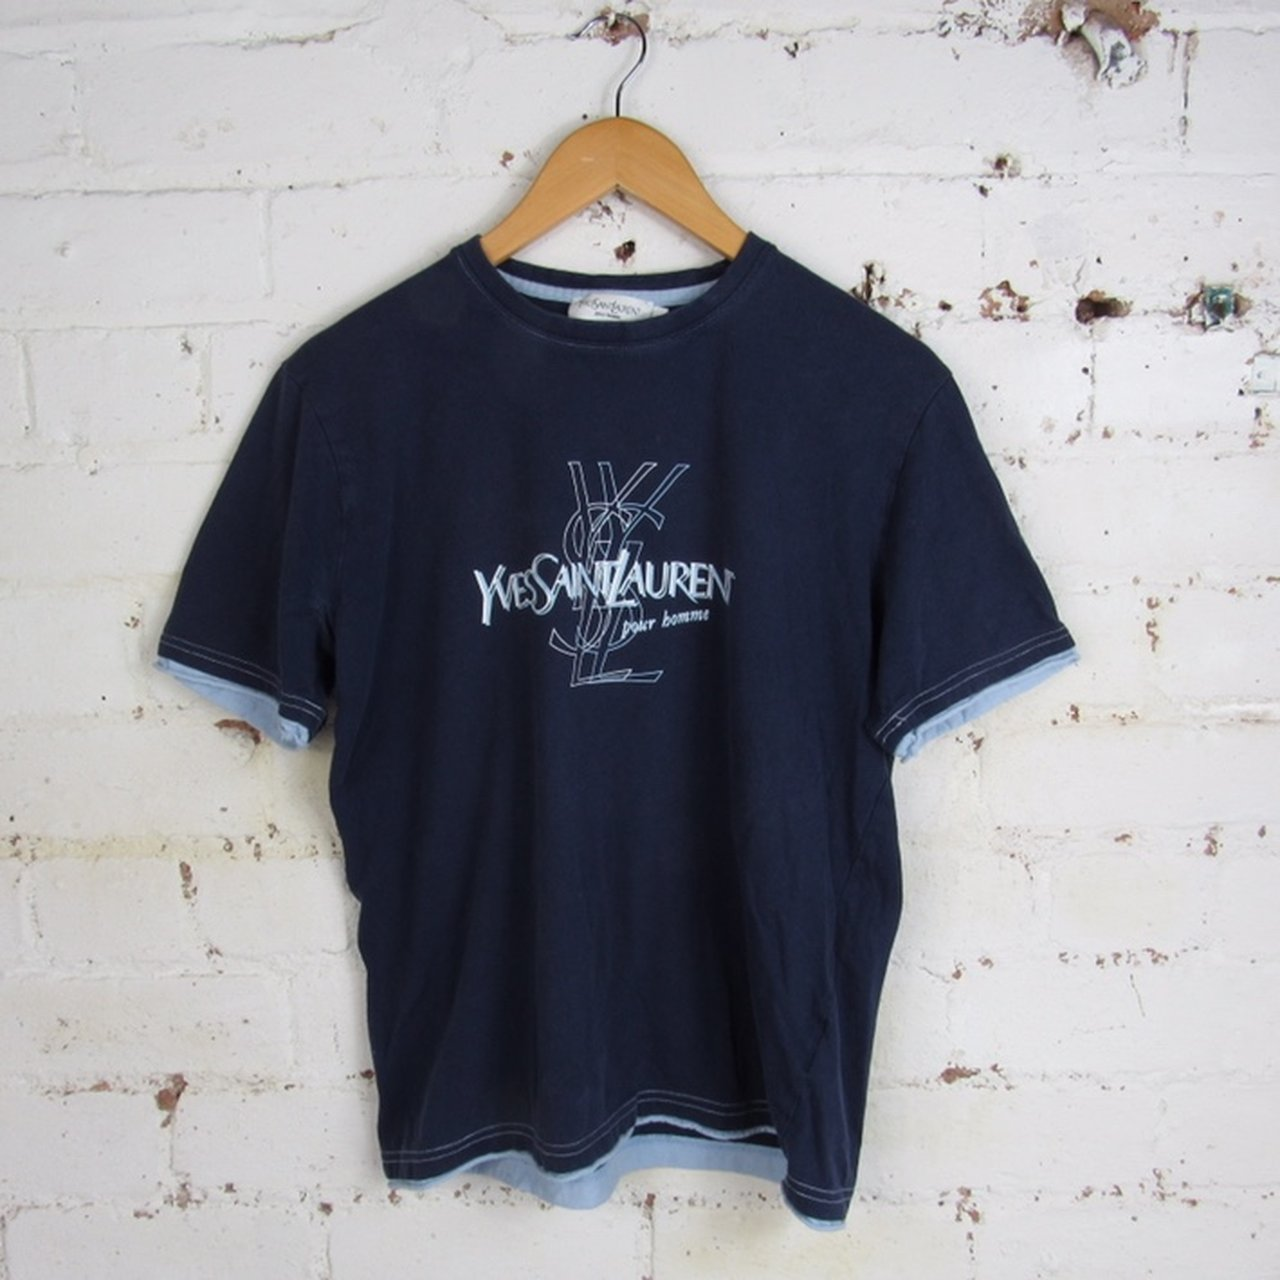 9aebbbc8 @varsityvintage. 28 days ago. Wolverhampton, United Kingdom. VINTAGE YVES  SAINT LAURENT YSL BLUE CREWNECK SPELLOUT SHORT SLEEVED T-SHIRT SIZE WOMENS  ...